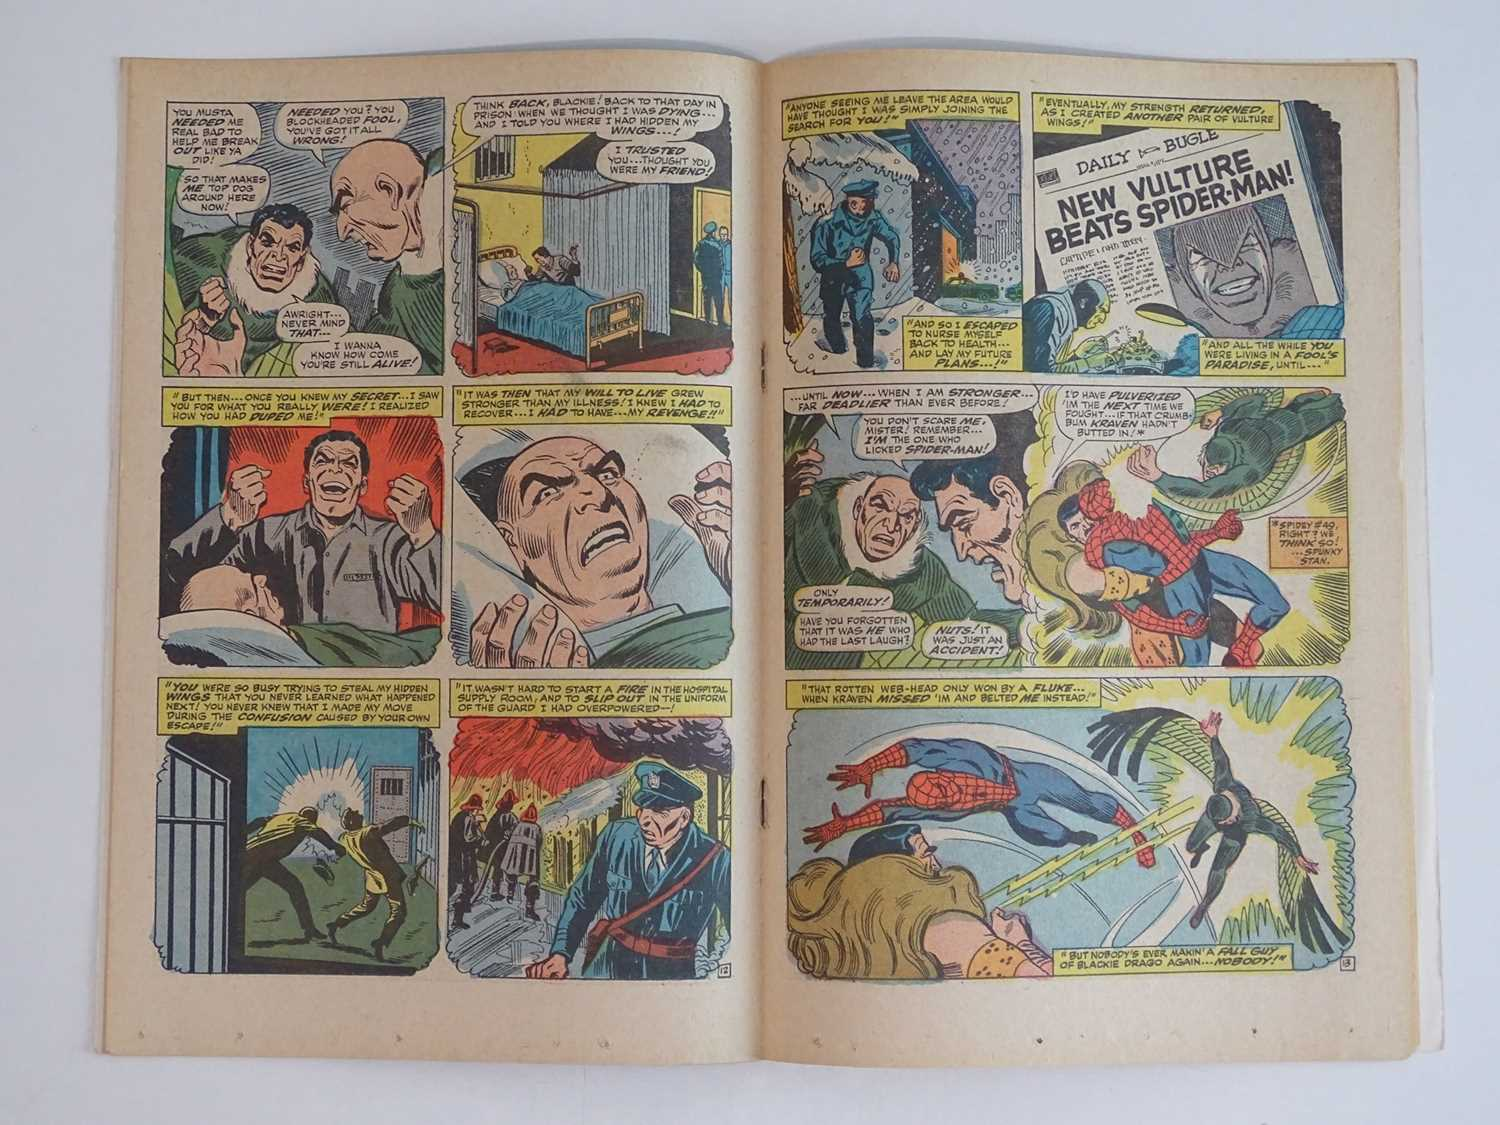 AMAZING SPIDER-MAN #63 - (1968 - MARVEL - UK Cover Price) - The original Vulture (Adrian Toomes) and - Image 5 of 9